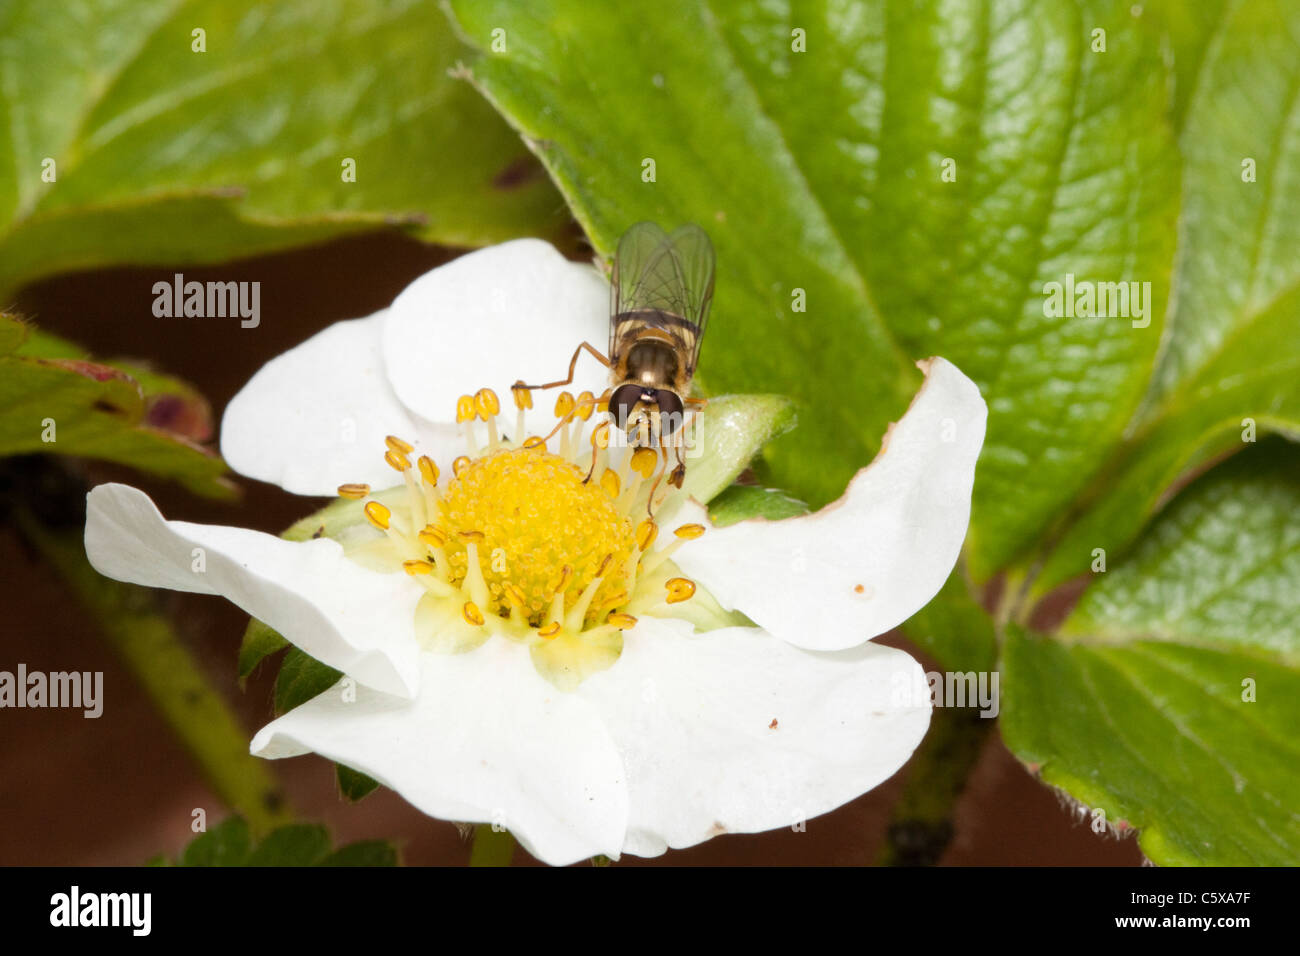 Hover fly (hoverfly) on a strawberry flower, garden in Kent, England, UK - Stock Image